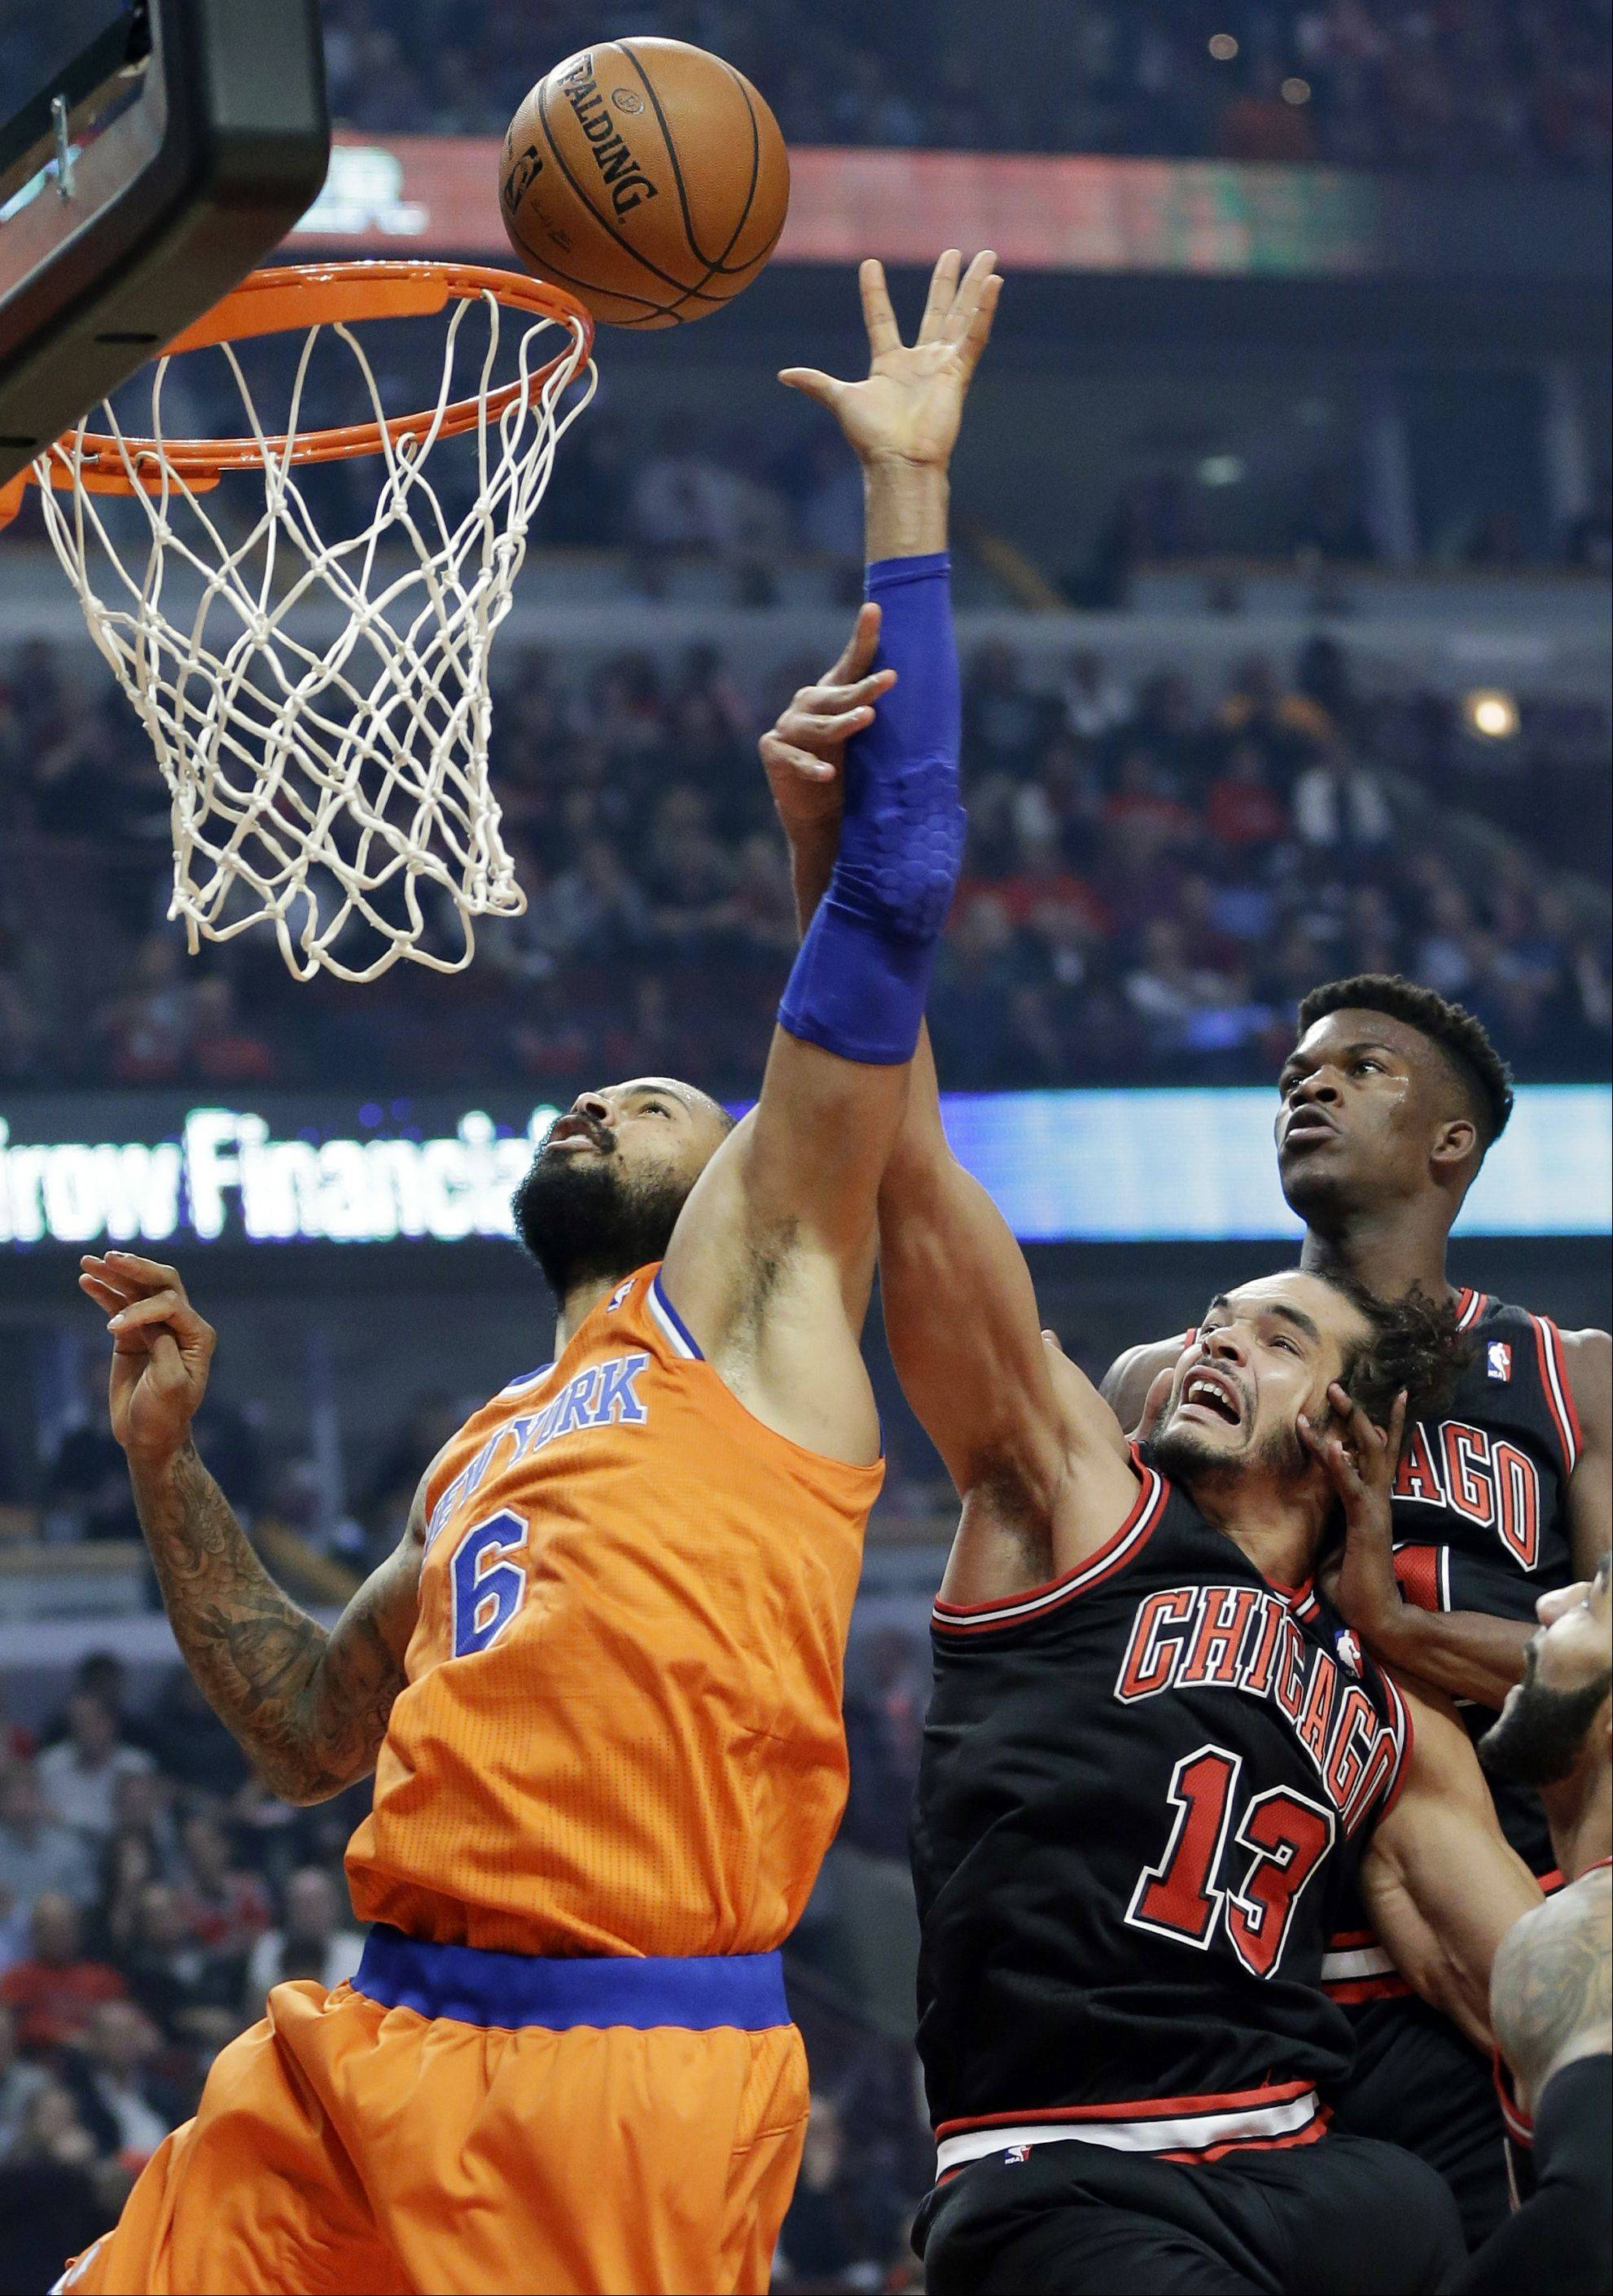 New York Knicks center Tyson Chandler (6) battles for a rebound against Chicago Bulls center Joakim Noah (13) and forward Jimmy Butler during the first half.